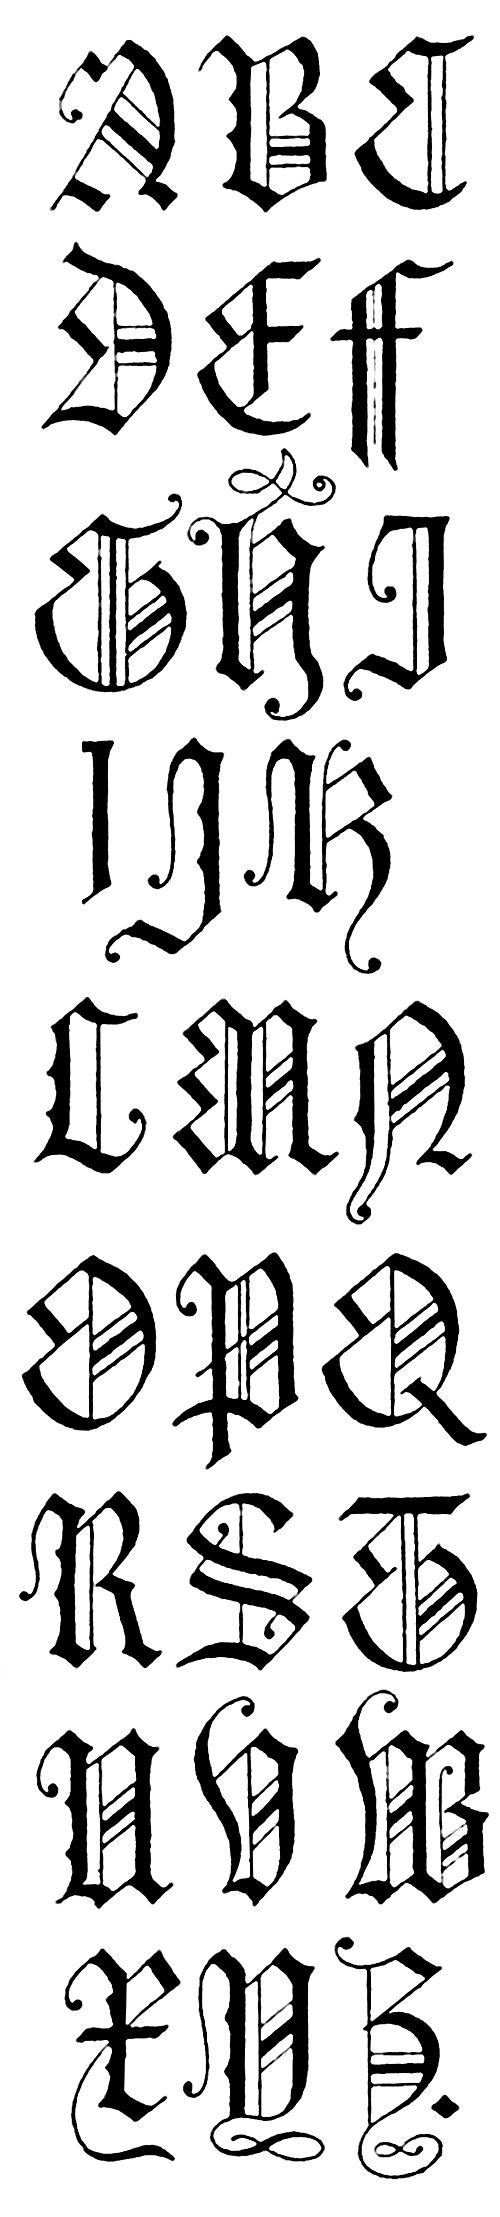 Gothic Lettering :: English Gothic Letters - 15th Century